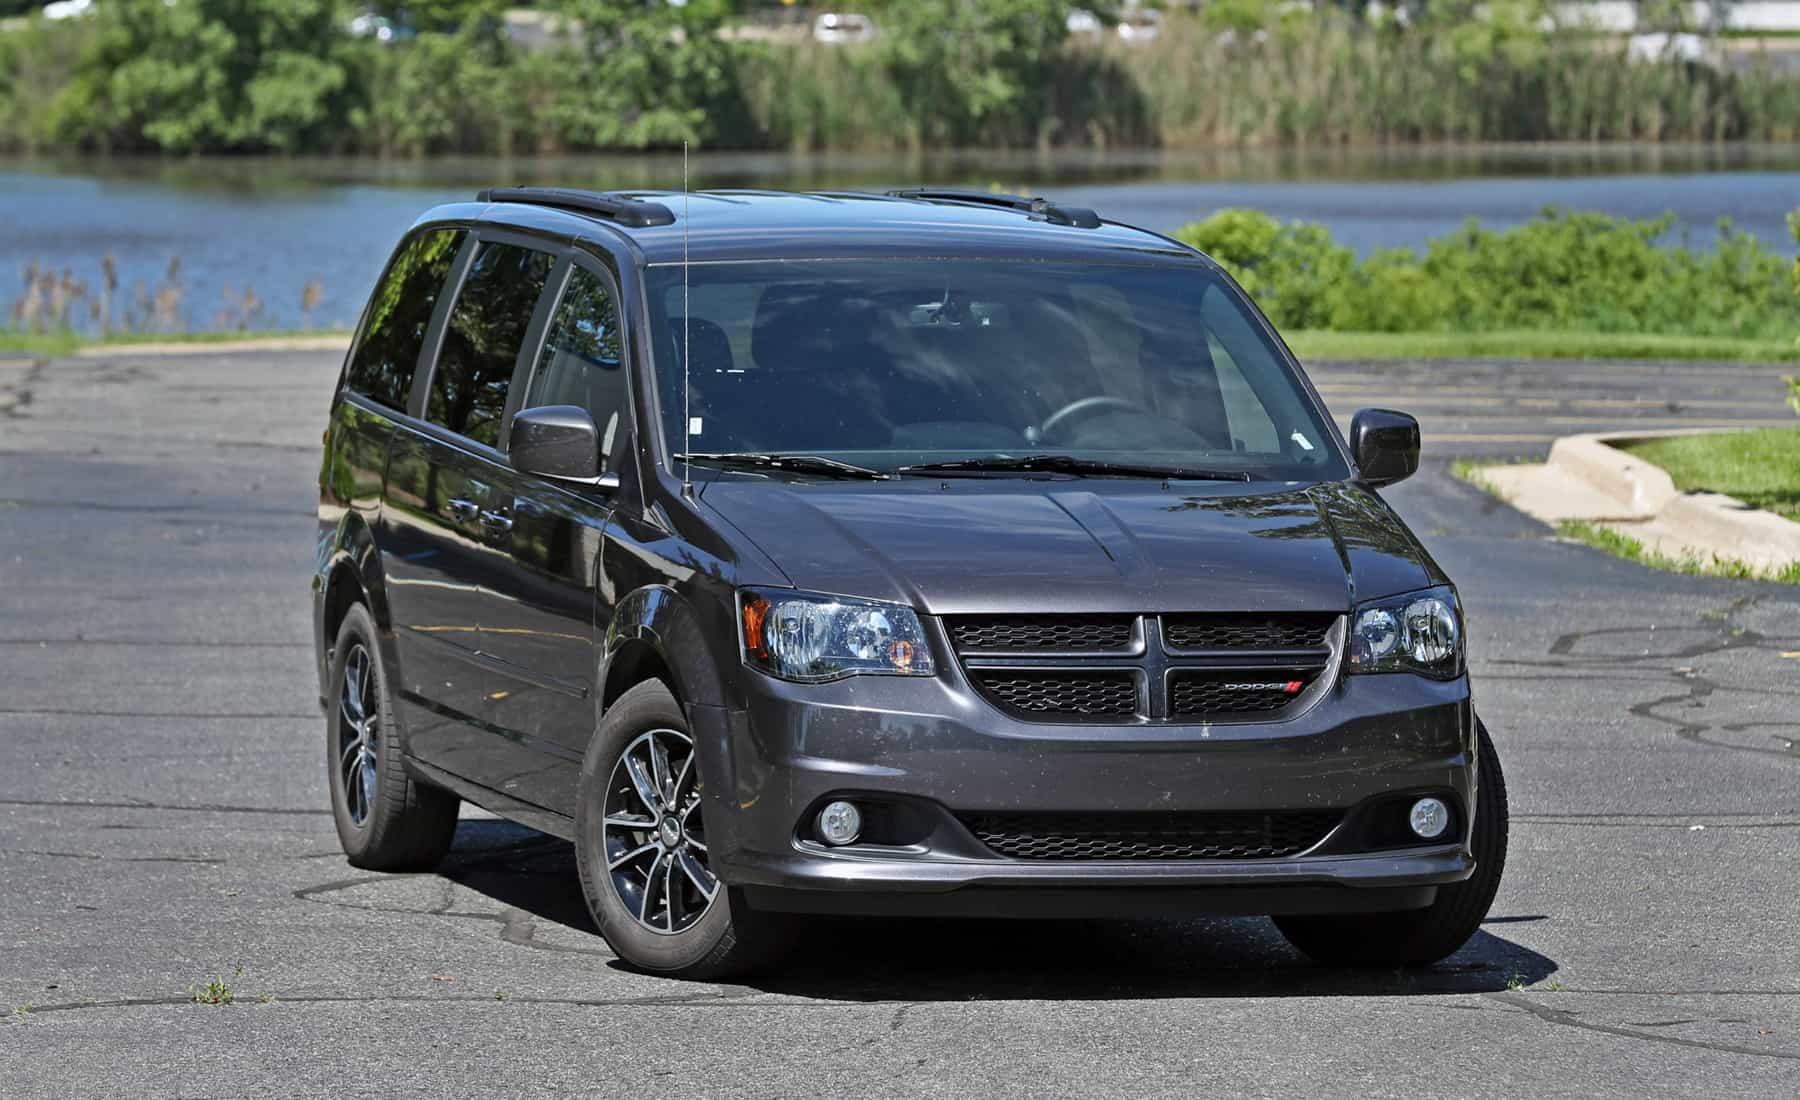 2017 Dodge Grand Caravan Exterior Front (Photo 3 of 47)